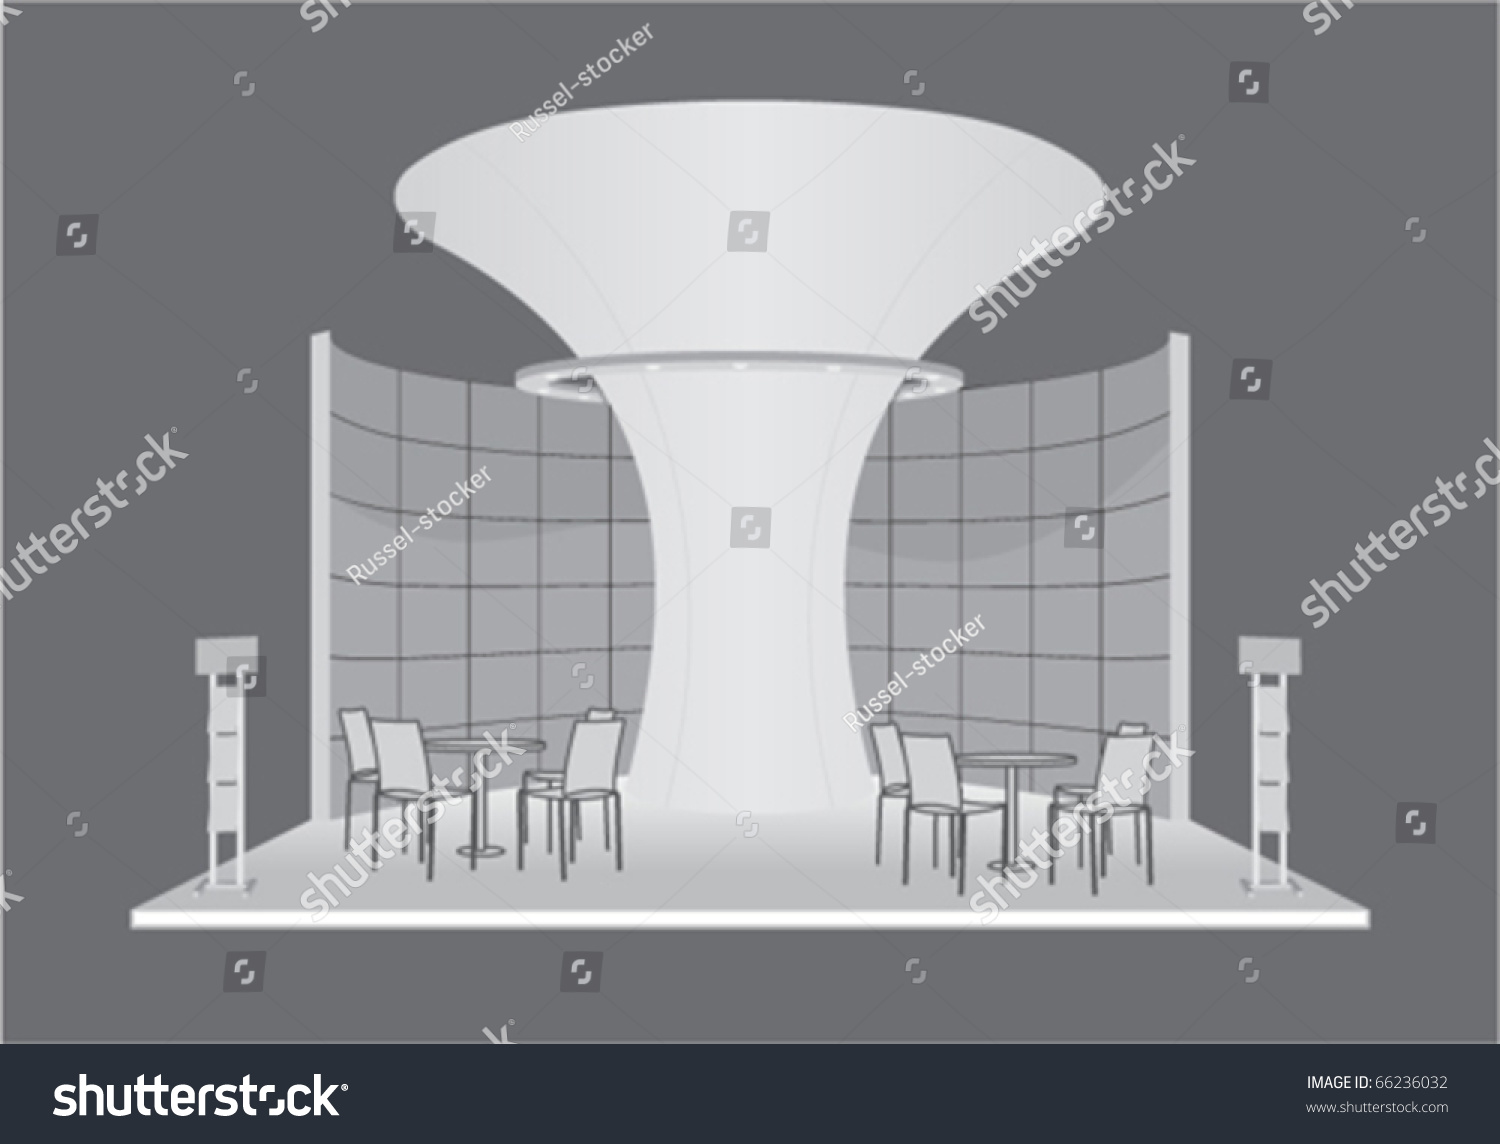 Simple Exhibition Stand Vector : Vector exhibition stand d  shutterstock